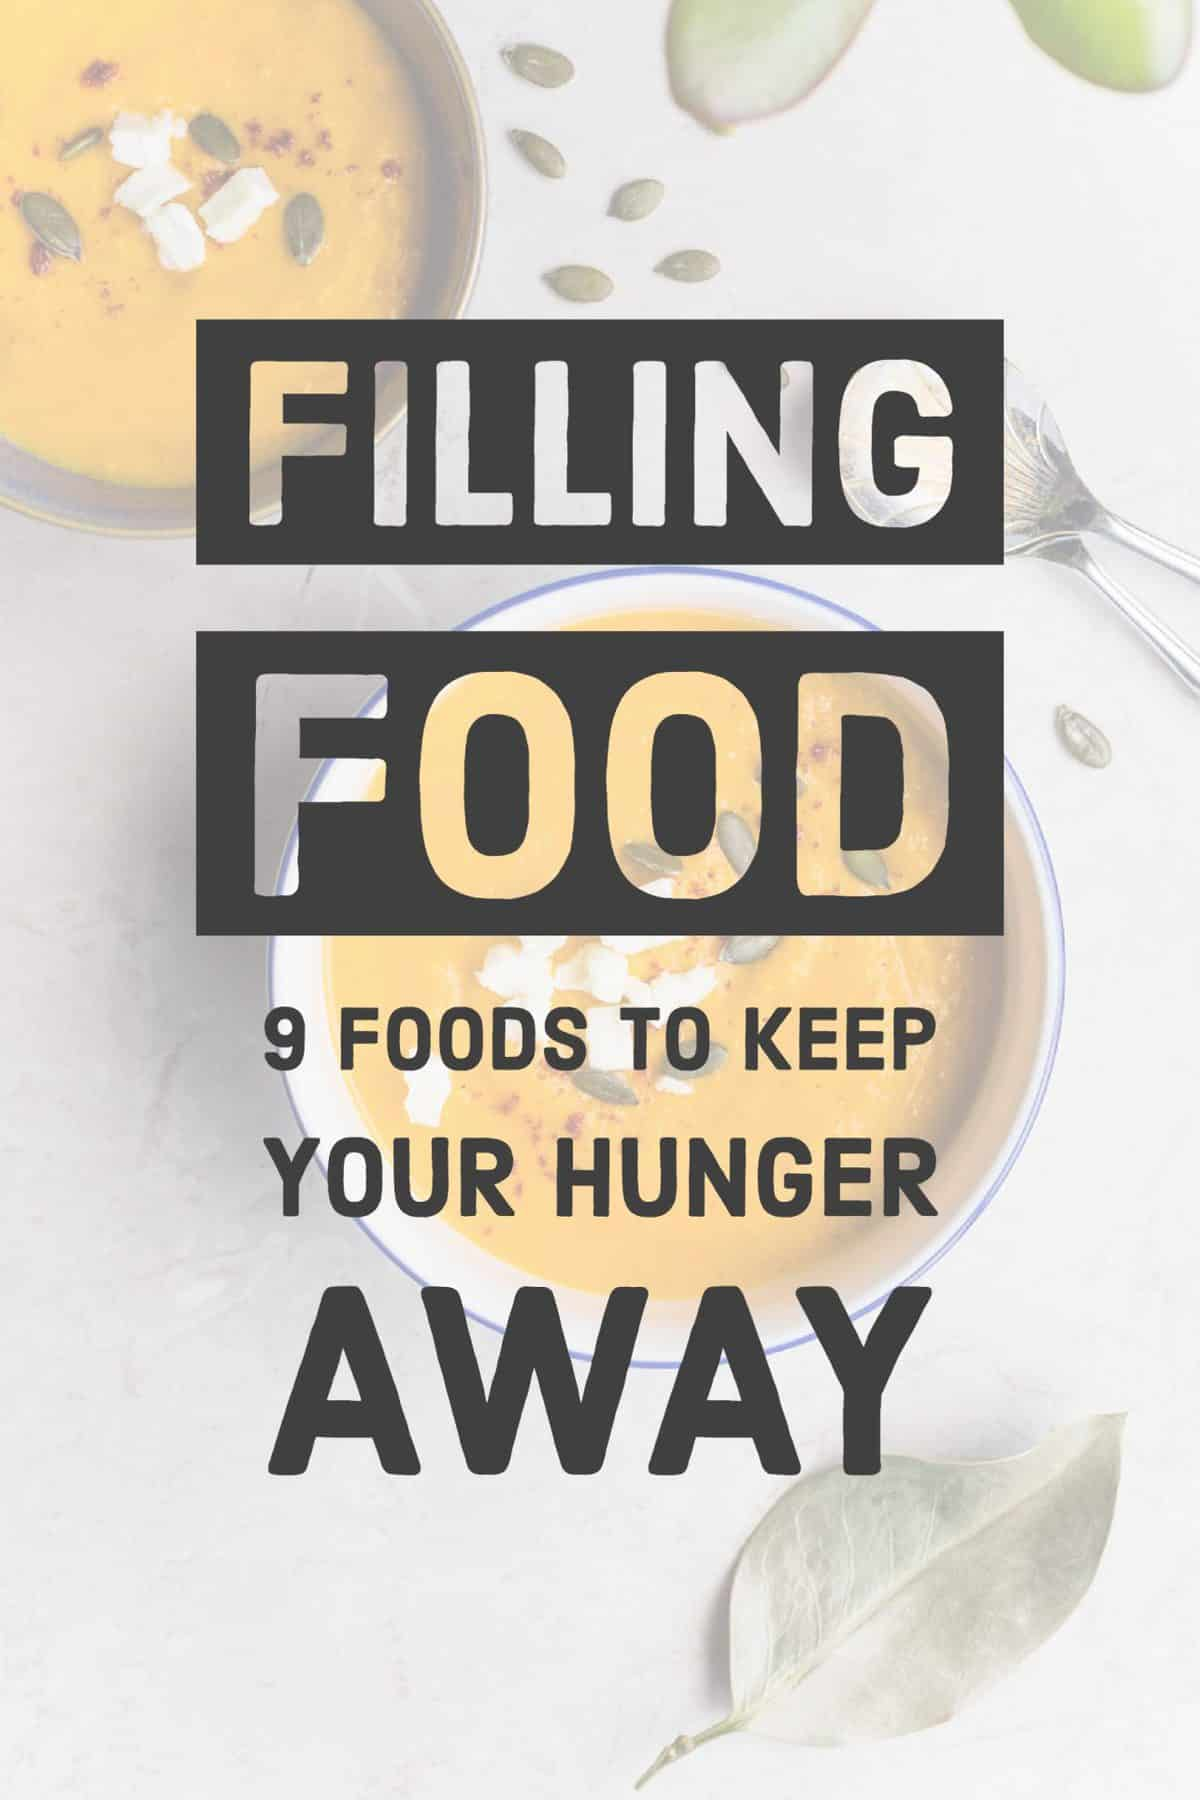 filling food 9 foods to keep your hunger away